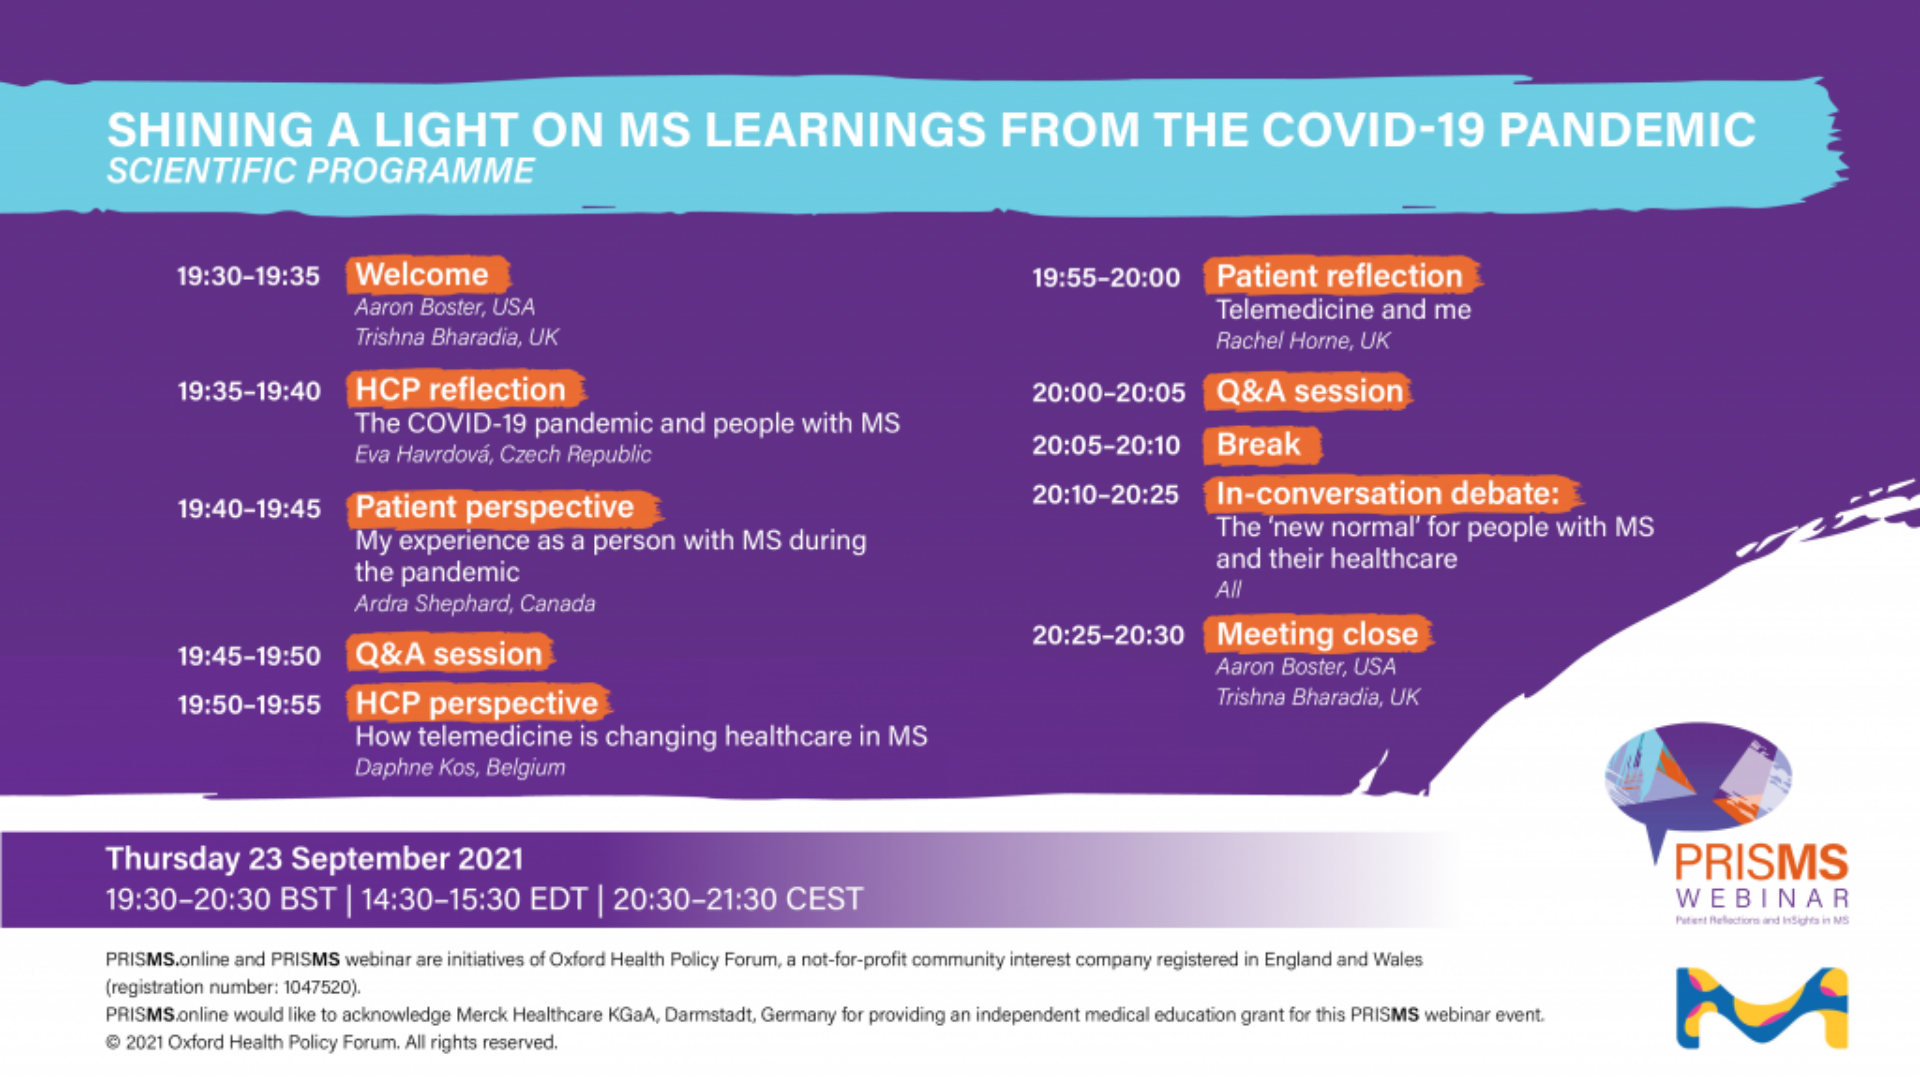 PRISMS Webinar 'Shining a light on MS learnings from the COVID-19 pandemic'